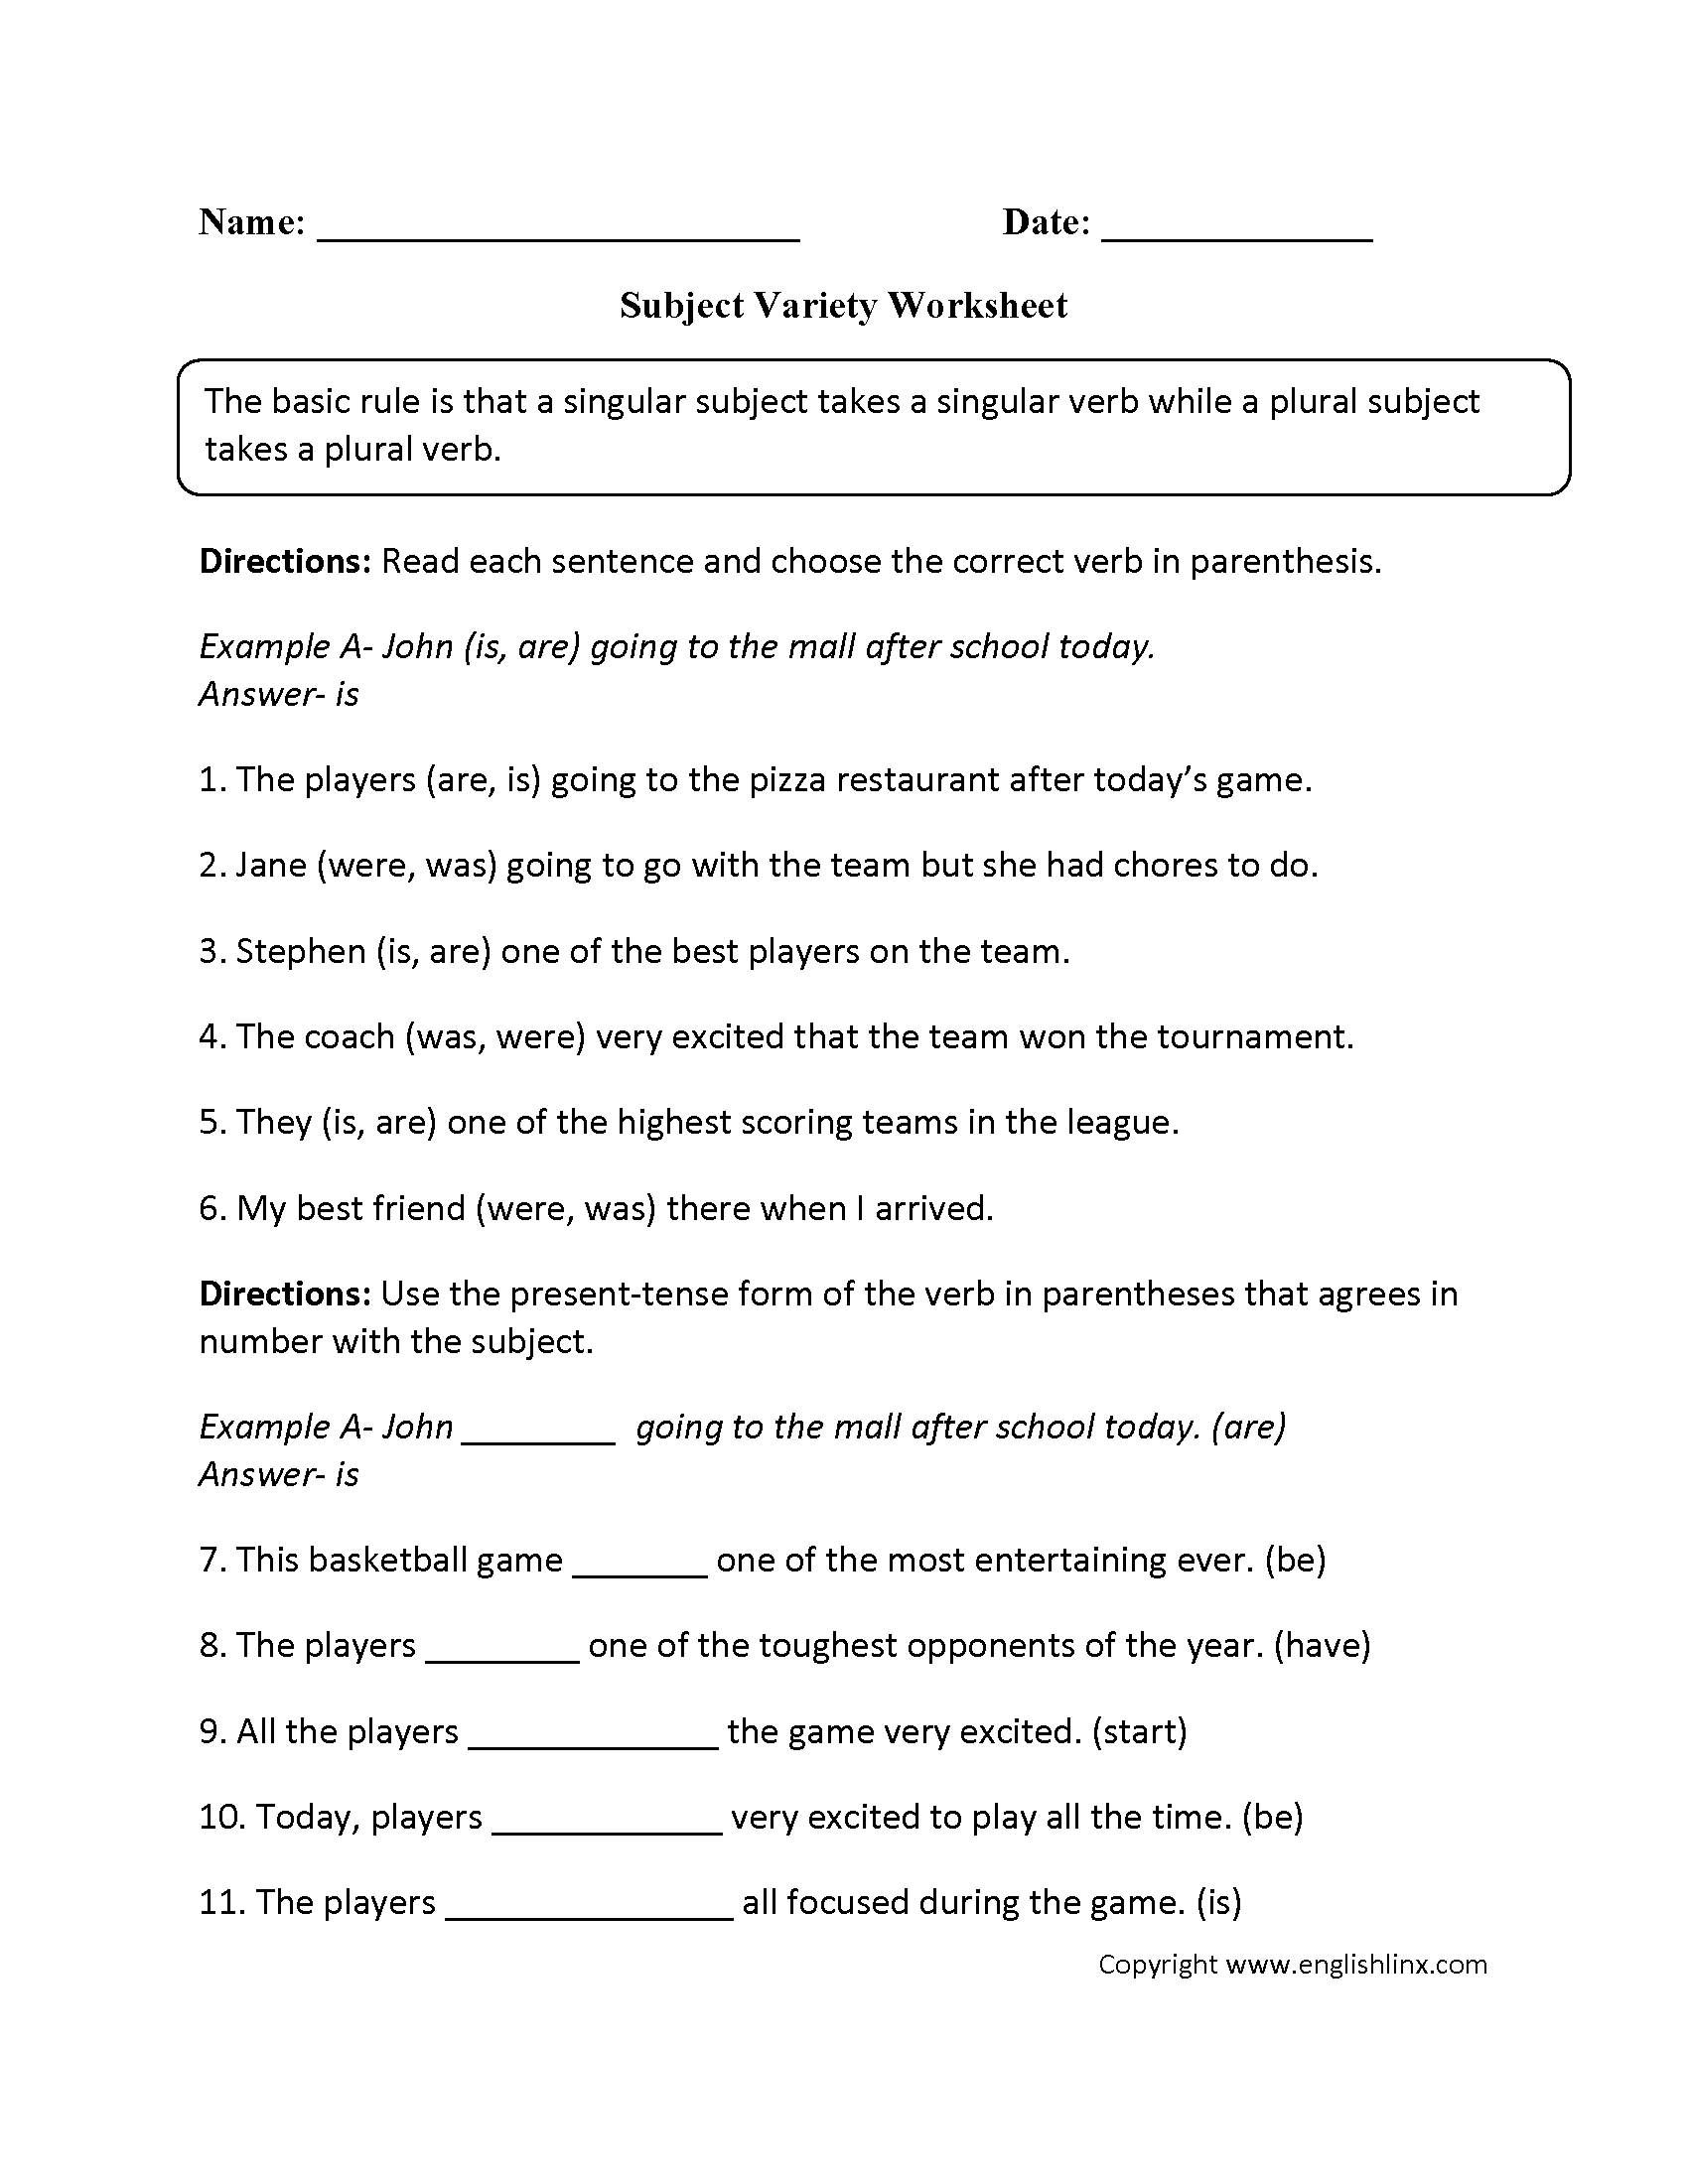 Word Usage Worksheets – Subject Verb Agreement Worksheet 4th Grade